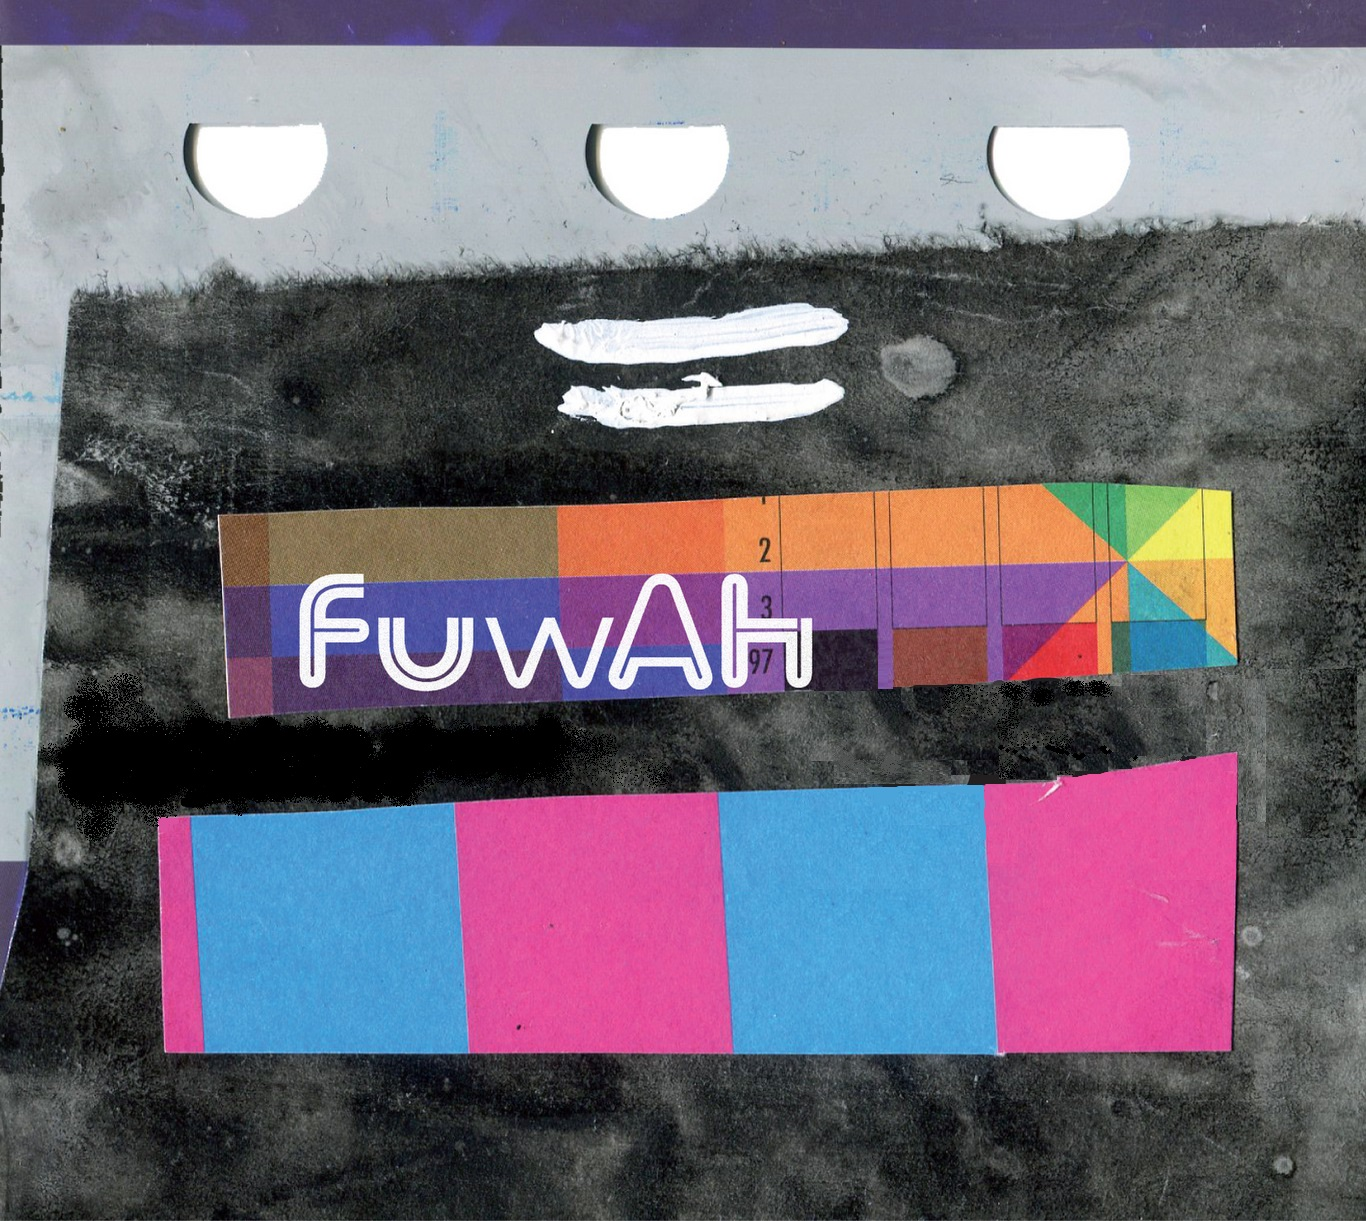 FUWAH - was born in 2012 from the collaboration with double bass player Luca Pissavini. We have released FUWAH and FUWAH Songs under Setola di Maiale and BUNCH Records. We have now fully welcomed Filippo Cozzi (saxophone) and Fabrizio Carriero (drums). Eŭropo: sen limoj is our first album as a four people band.Album cover by Andrea Marconi